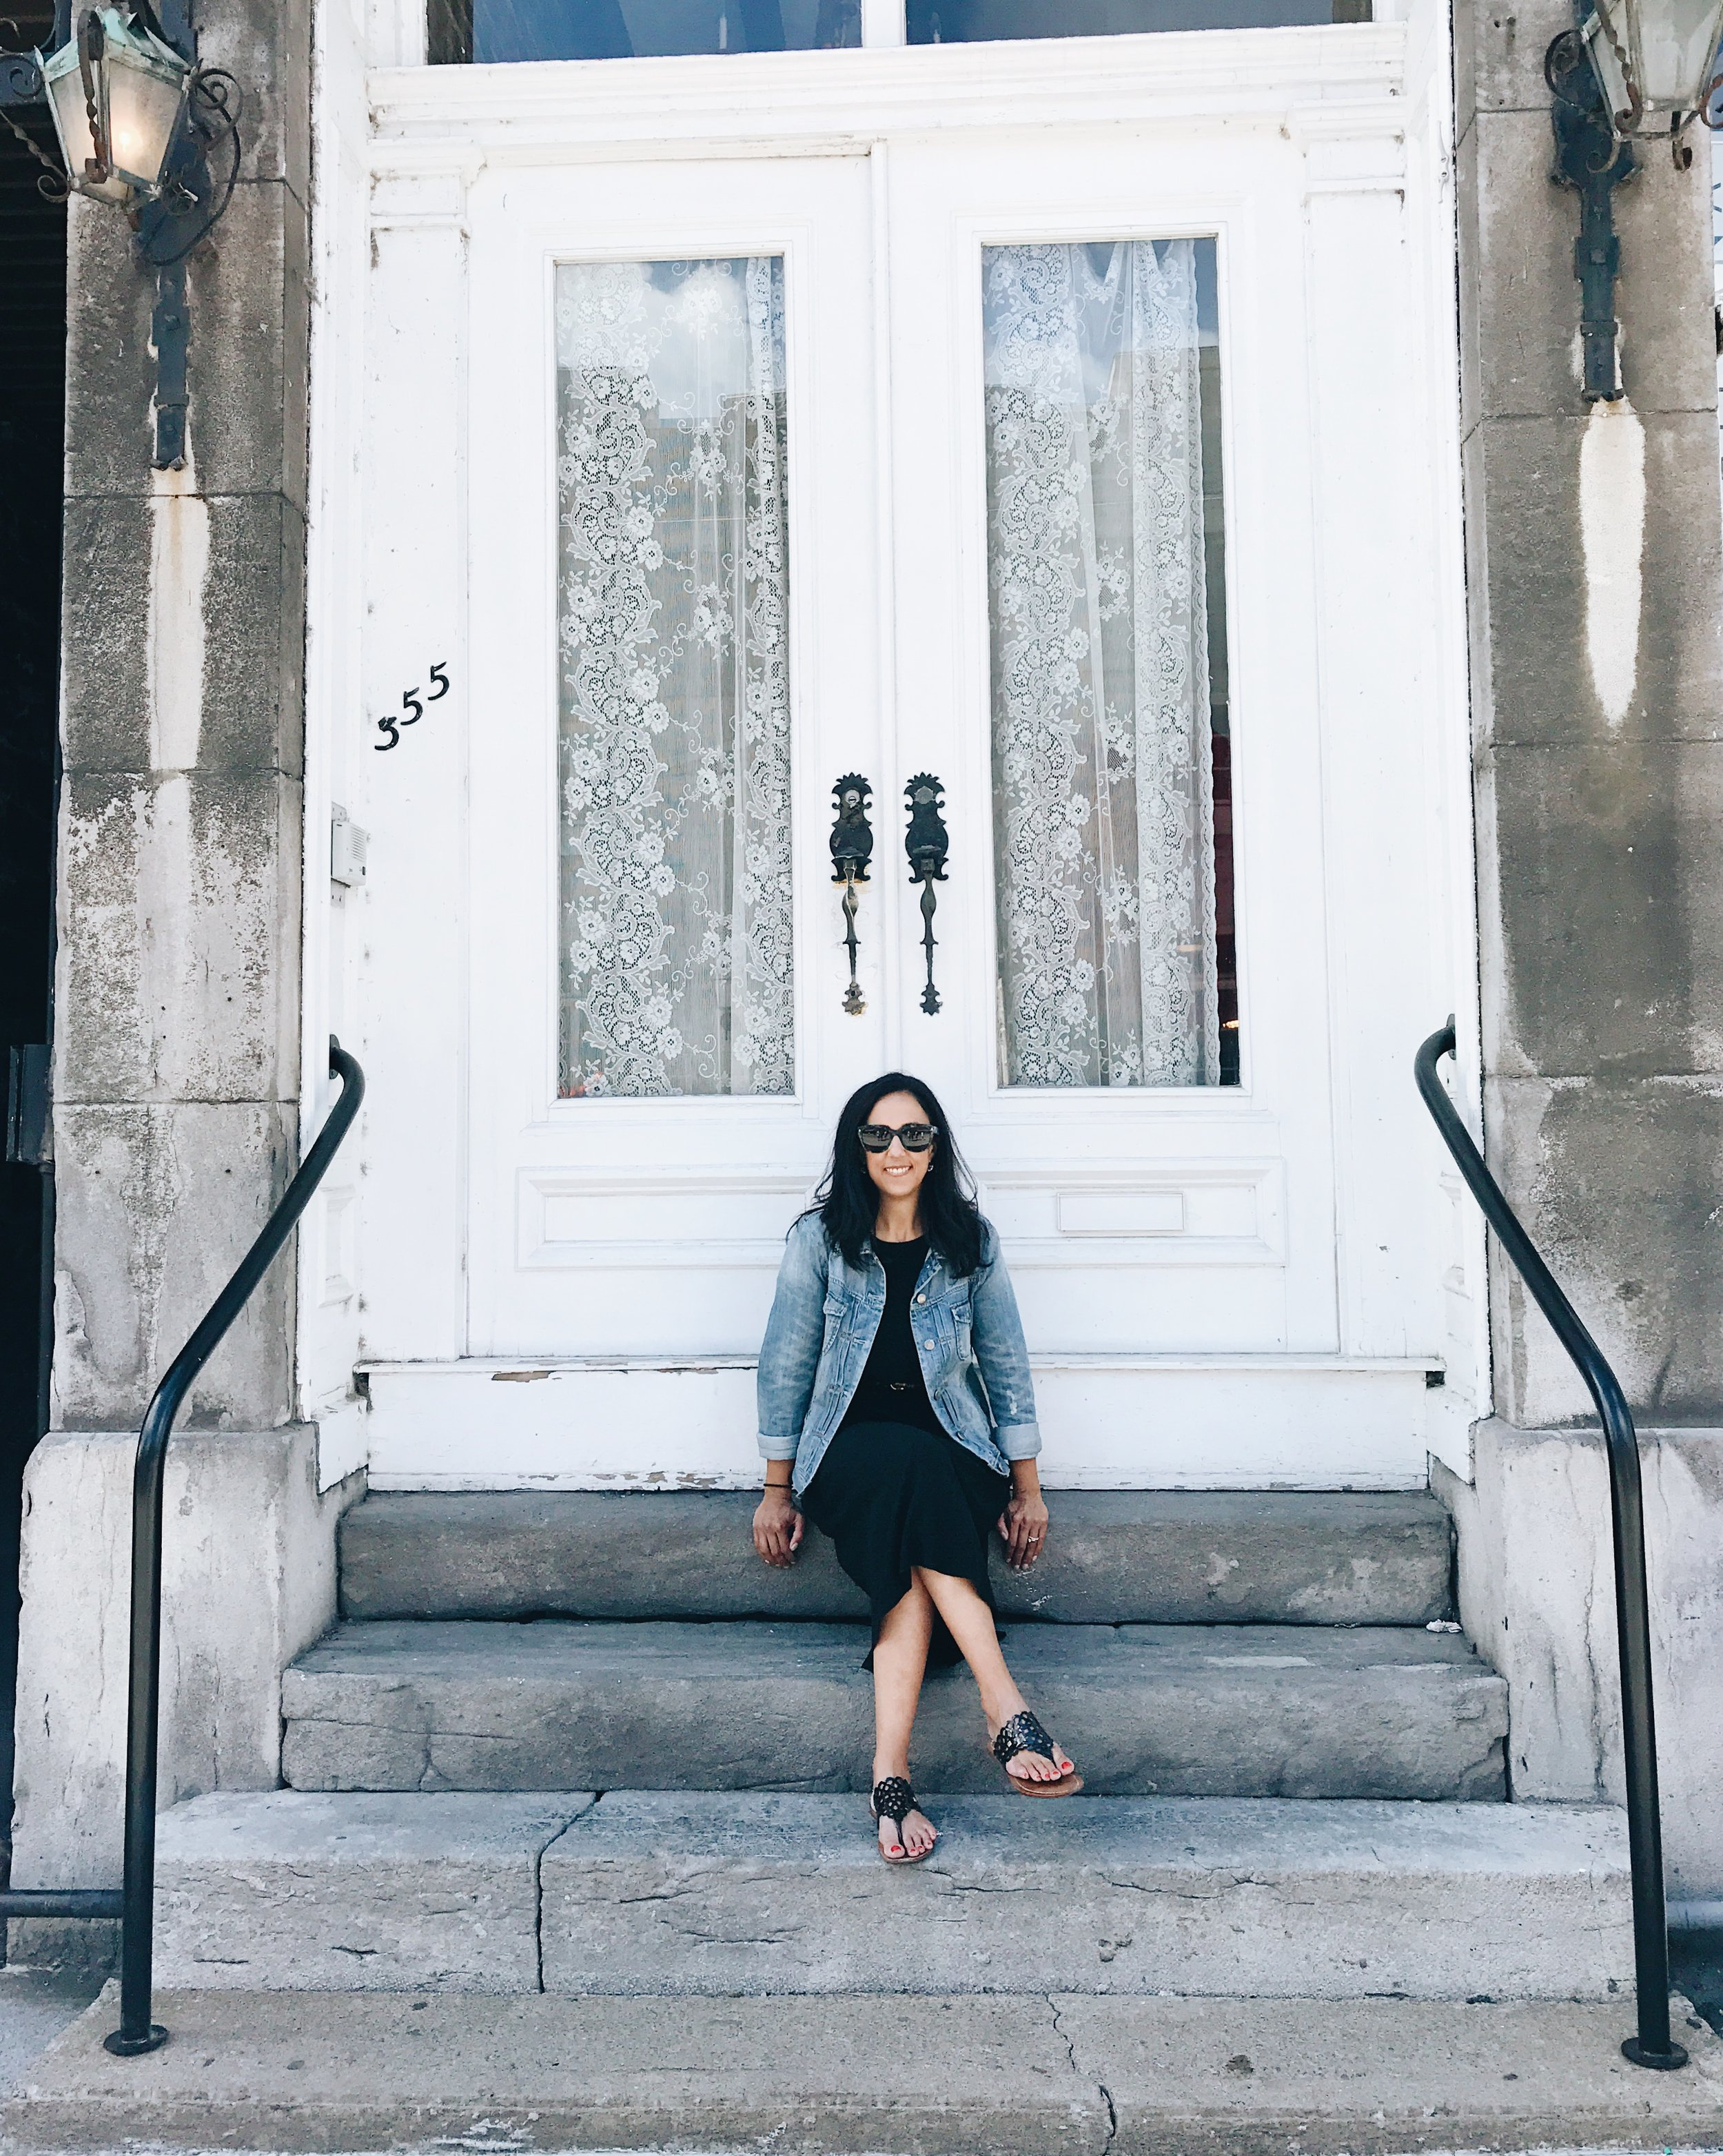 Nyla Free Designs Travels Montreal, Weekend Guide, Travel Tips, Canada, Calgary Interior Designer